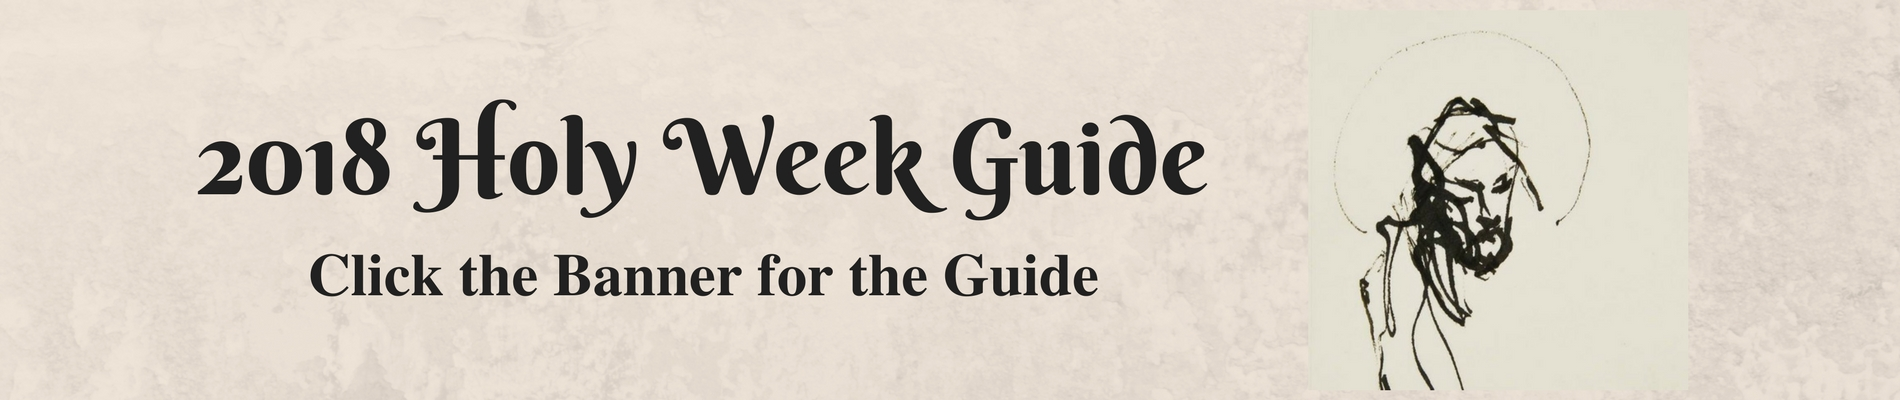 2018 Holy Week Guide